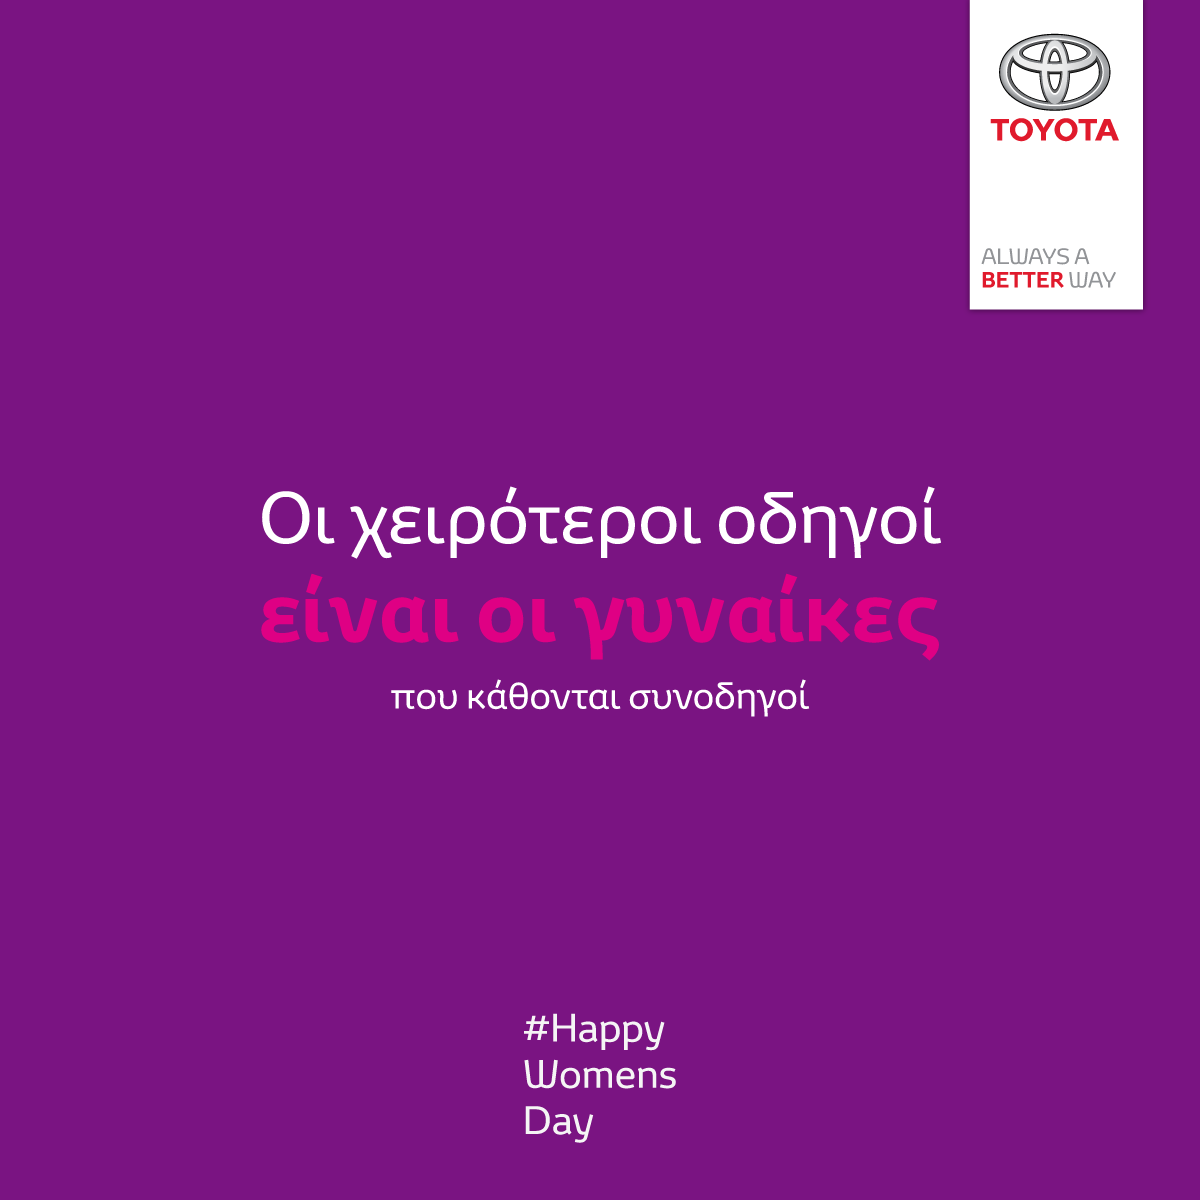 Toyota - Women's day